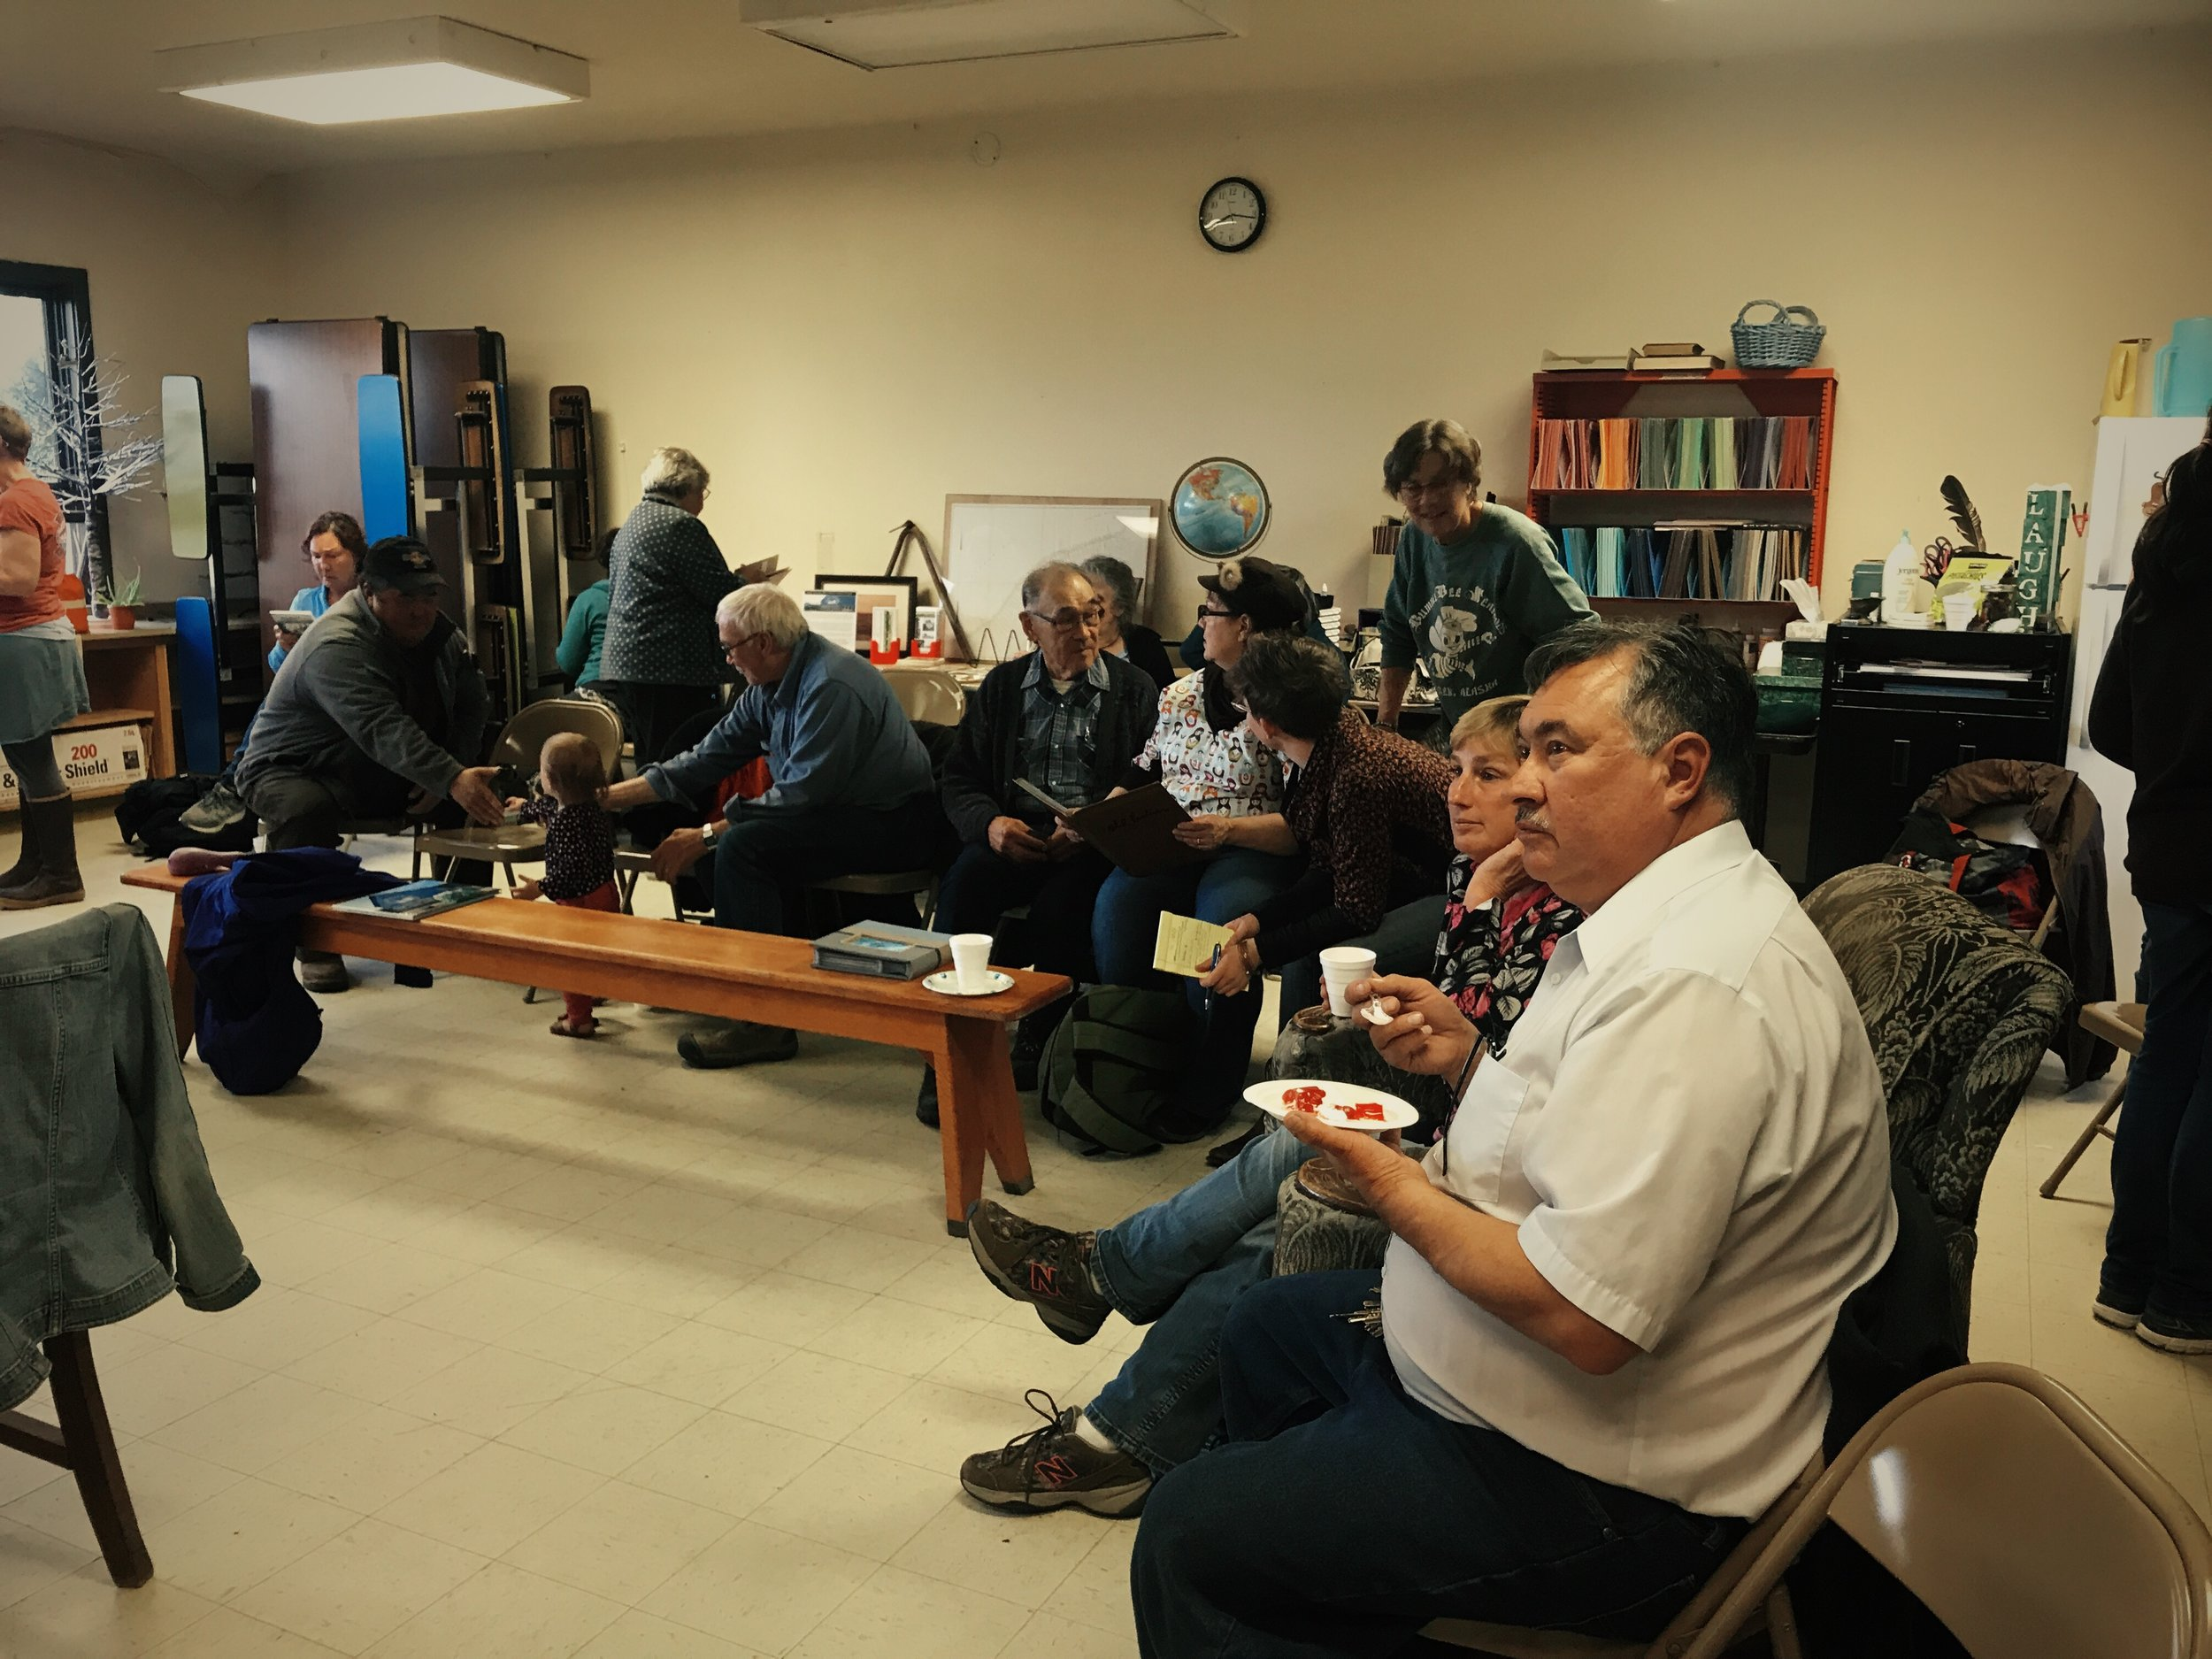 Carvel Zimin and other Bristol Bay residents learn about the NEH Creating Humanities Community grant during a presentation at the 2017 MugUp Conversations Event in South Naknek, AK